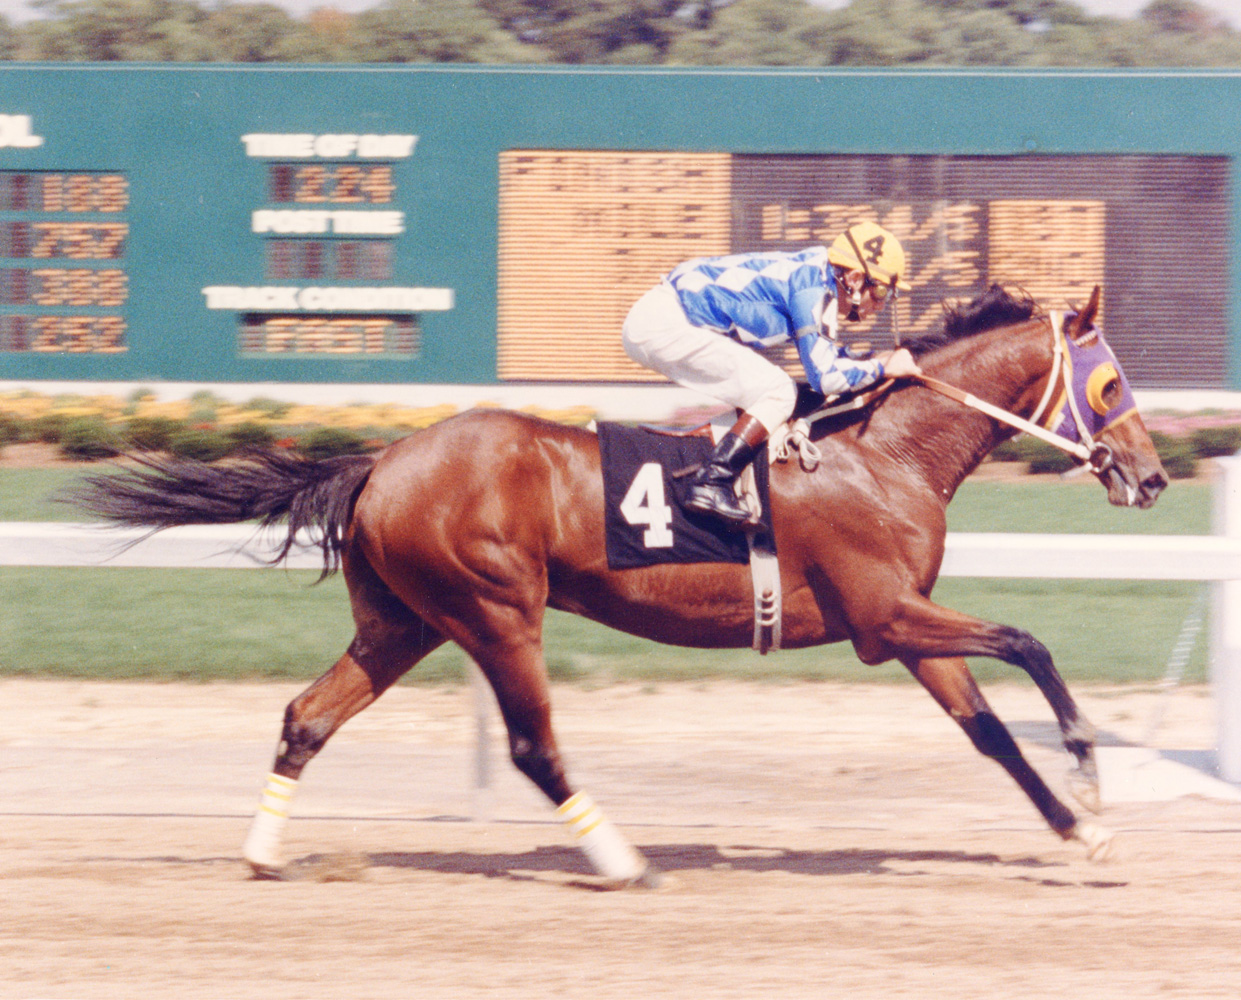 Don Brumfield and Alysheba winning a Maiden Special Weight event at Turfway Park in September 1986 (Lang Photos/Museum Collection)